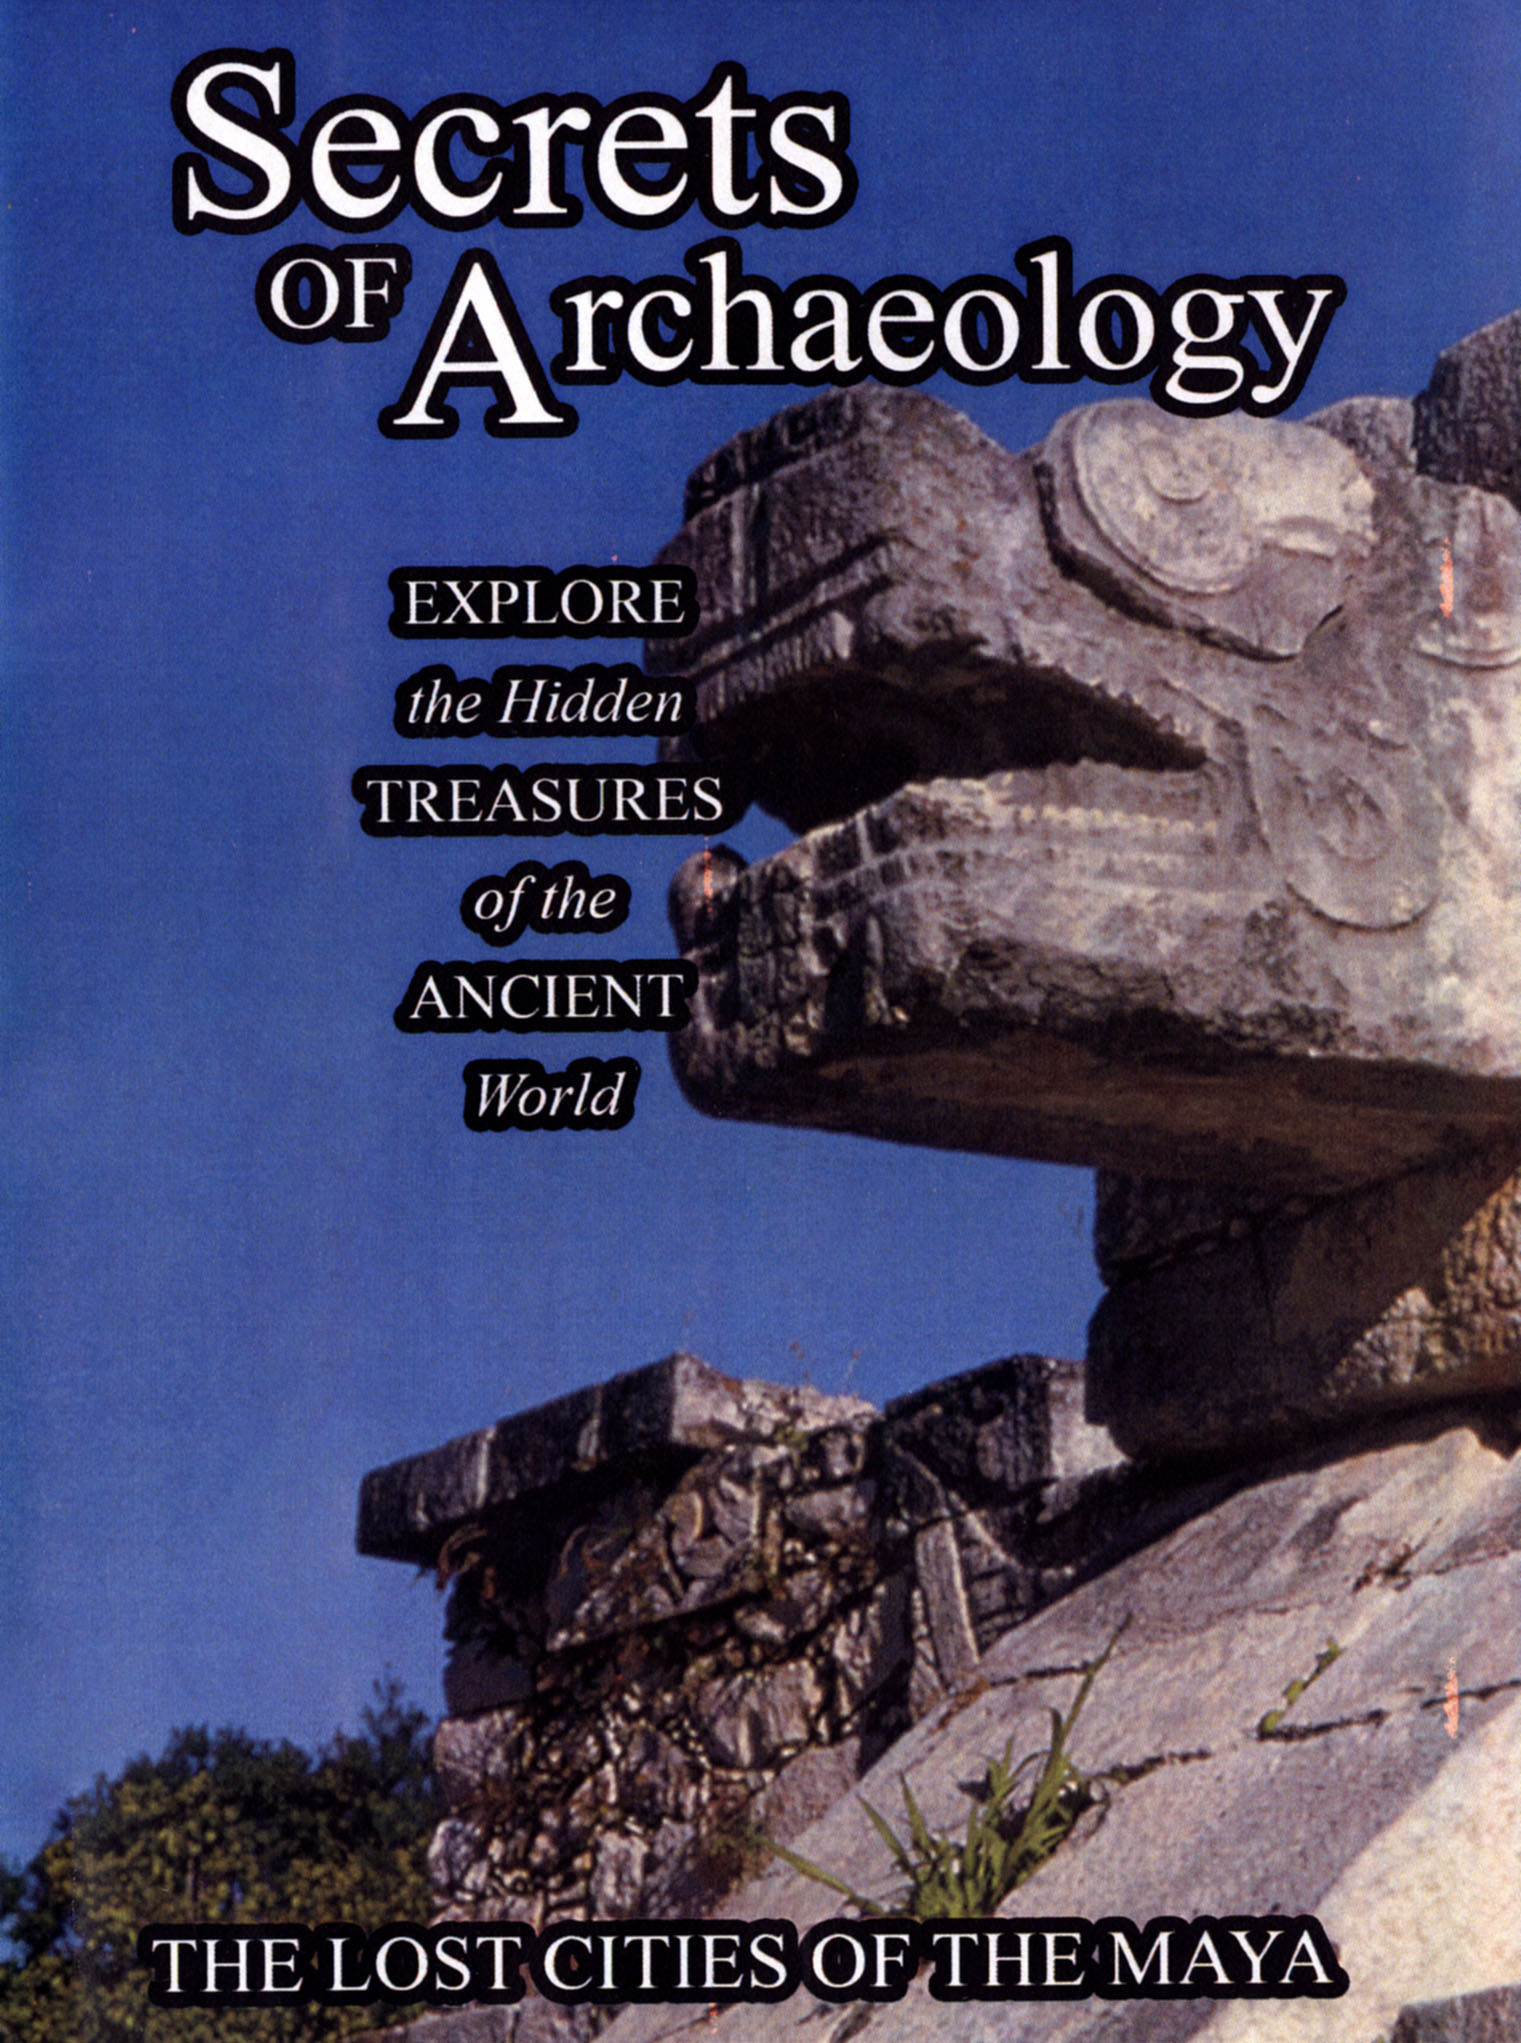 Secrets of Archaeology: The Lost Cities of the Maya